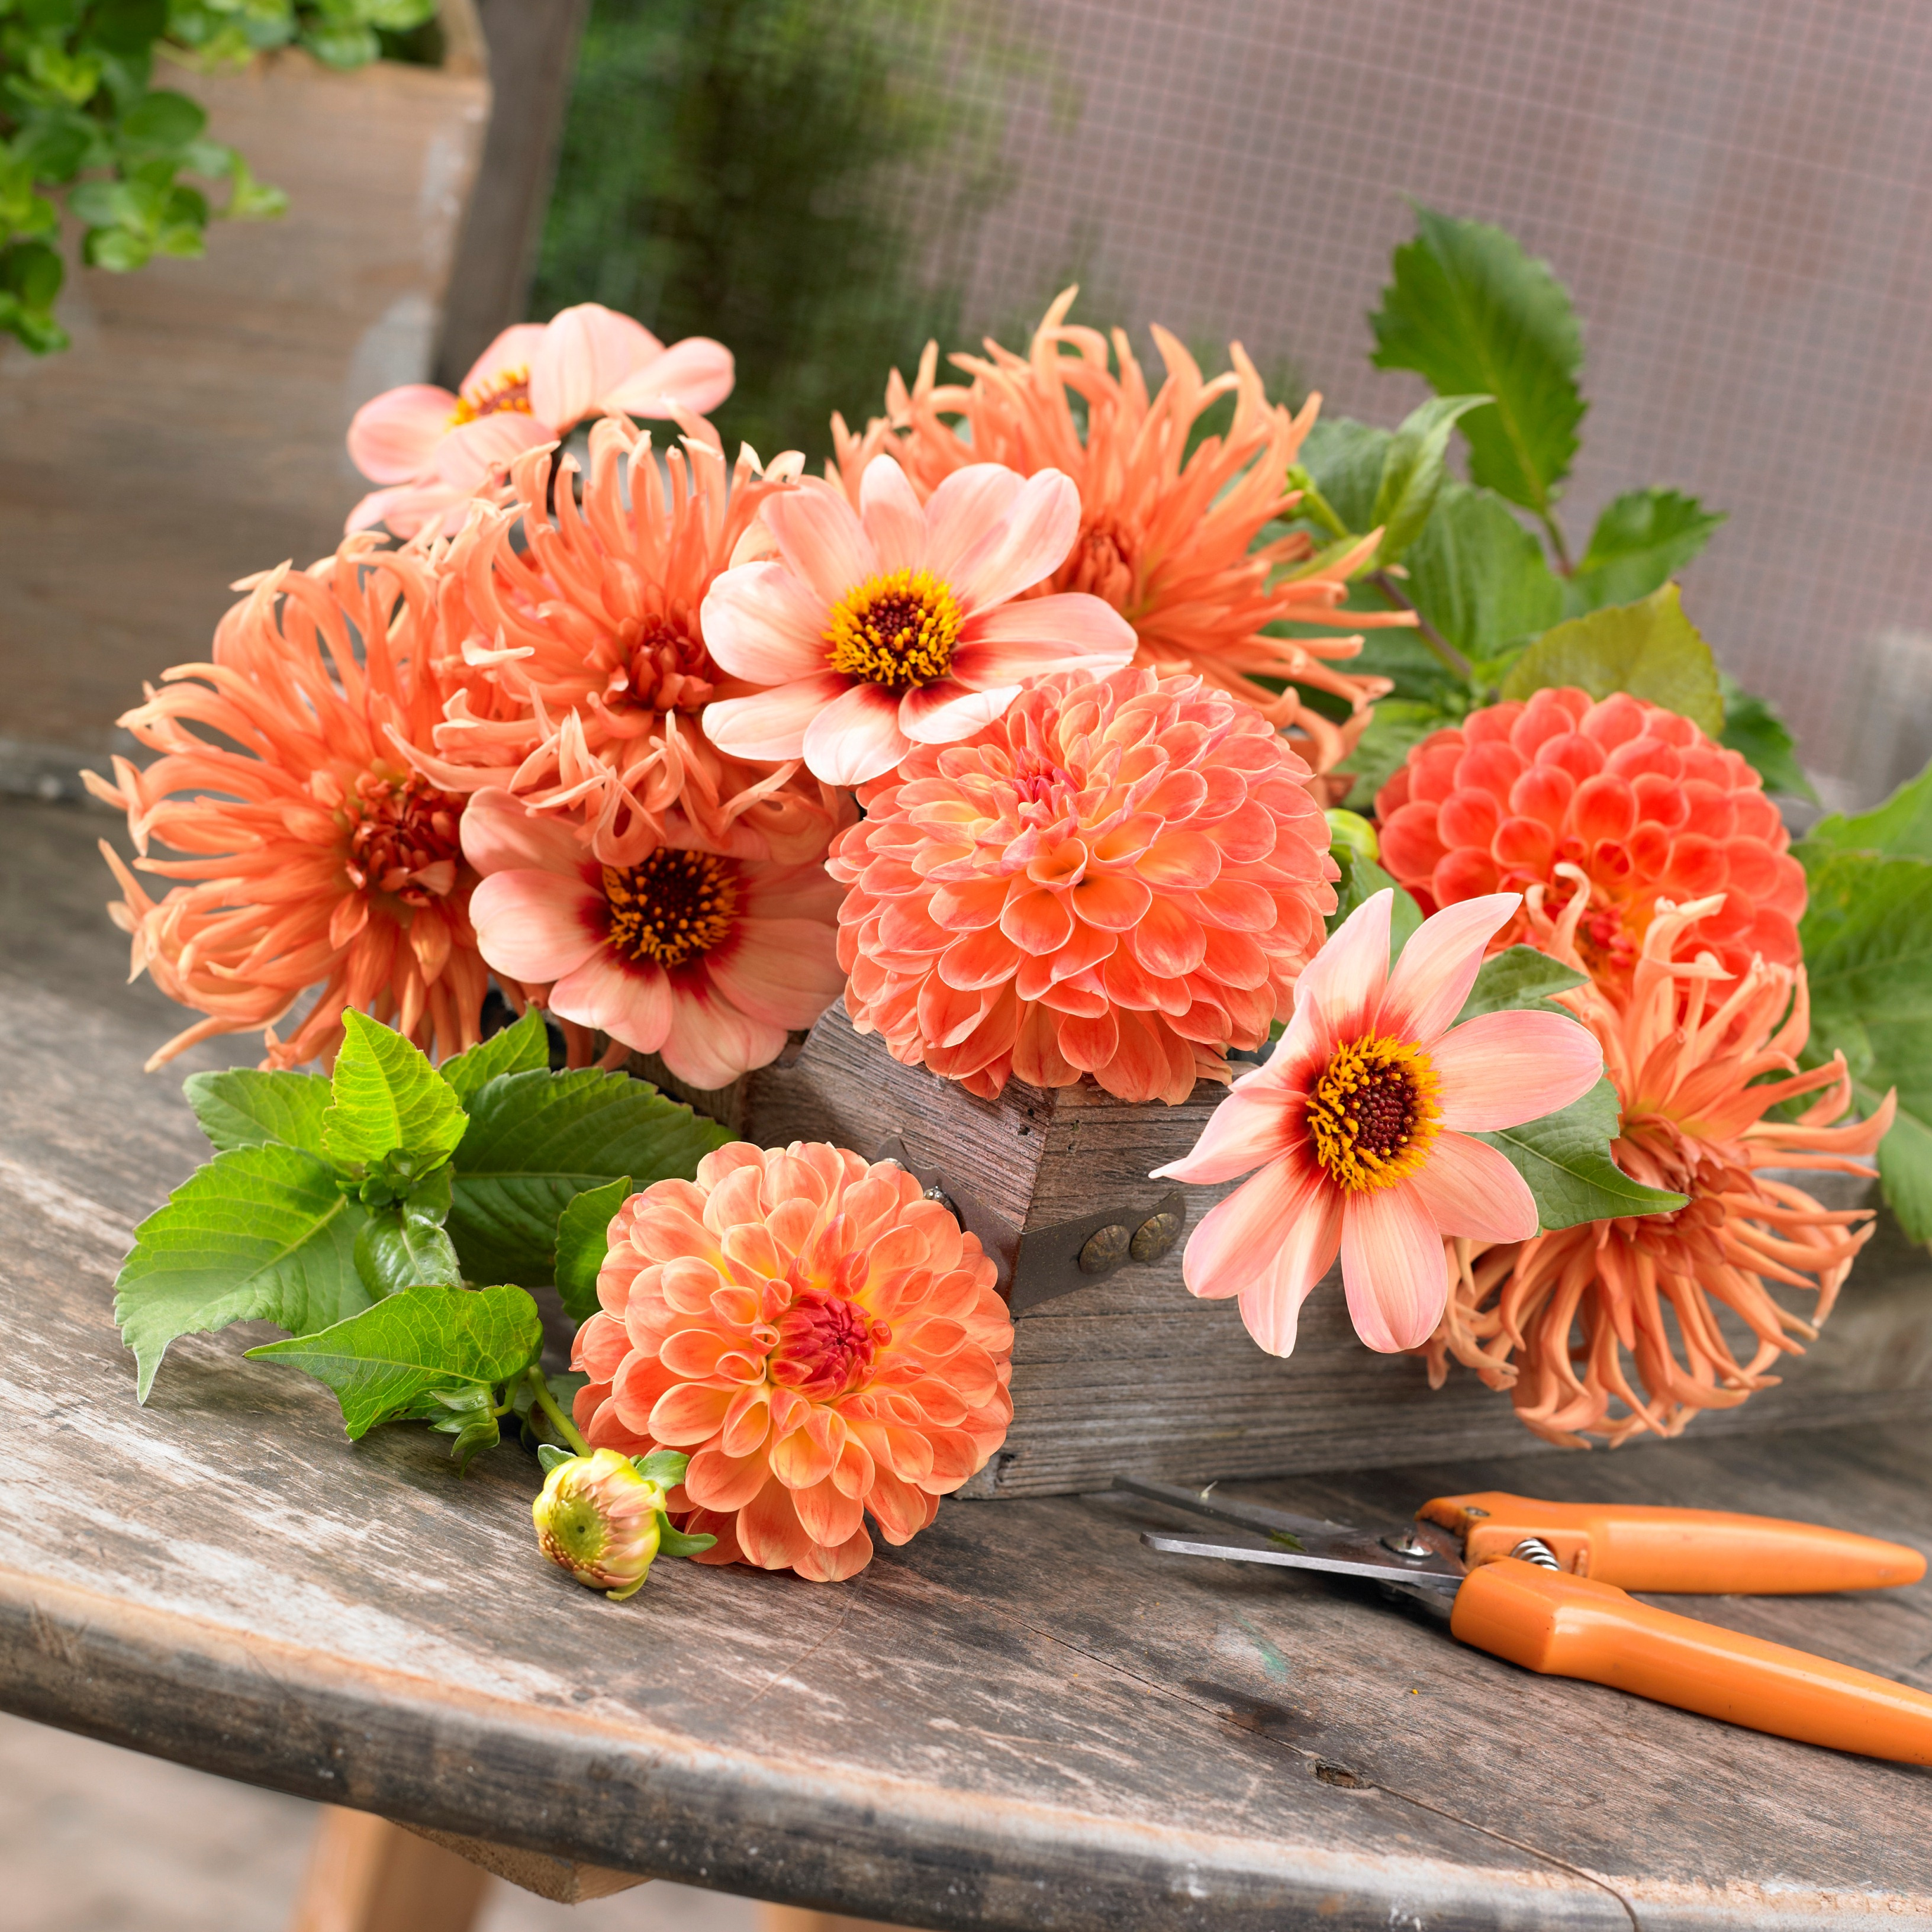 Tips For Growing A Cutting Garden To Create Gorgeous Bouquets